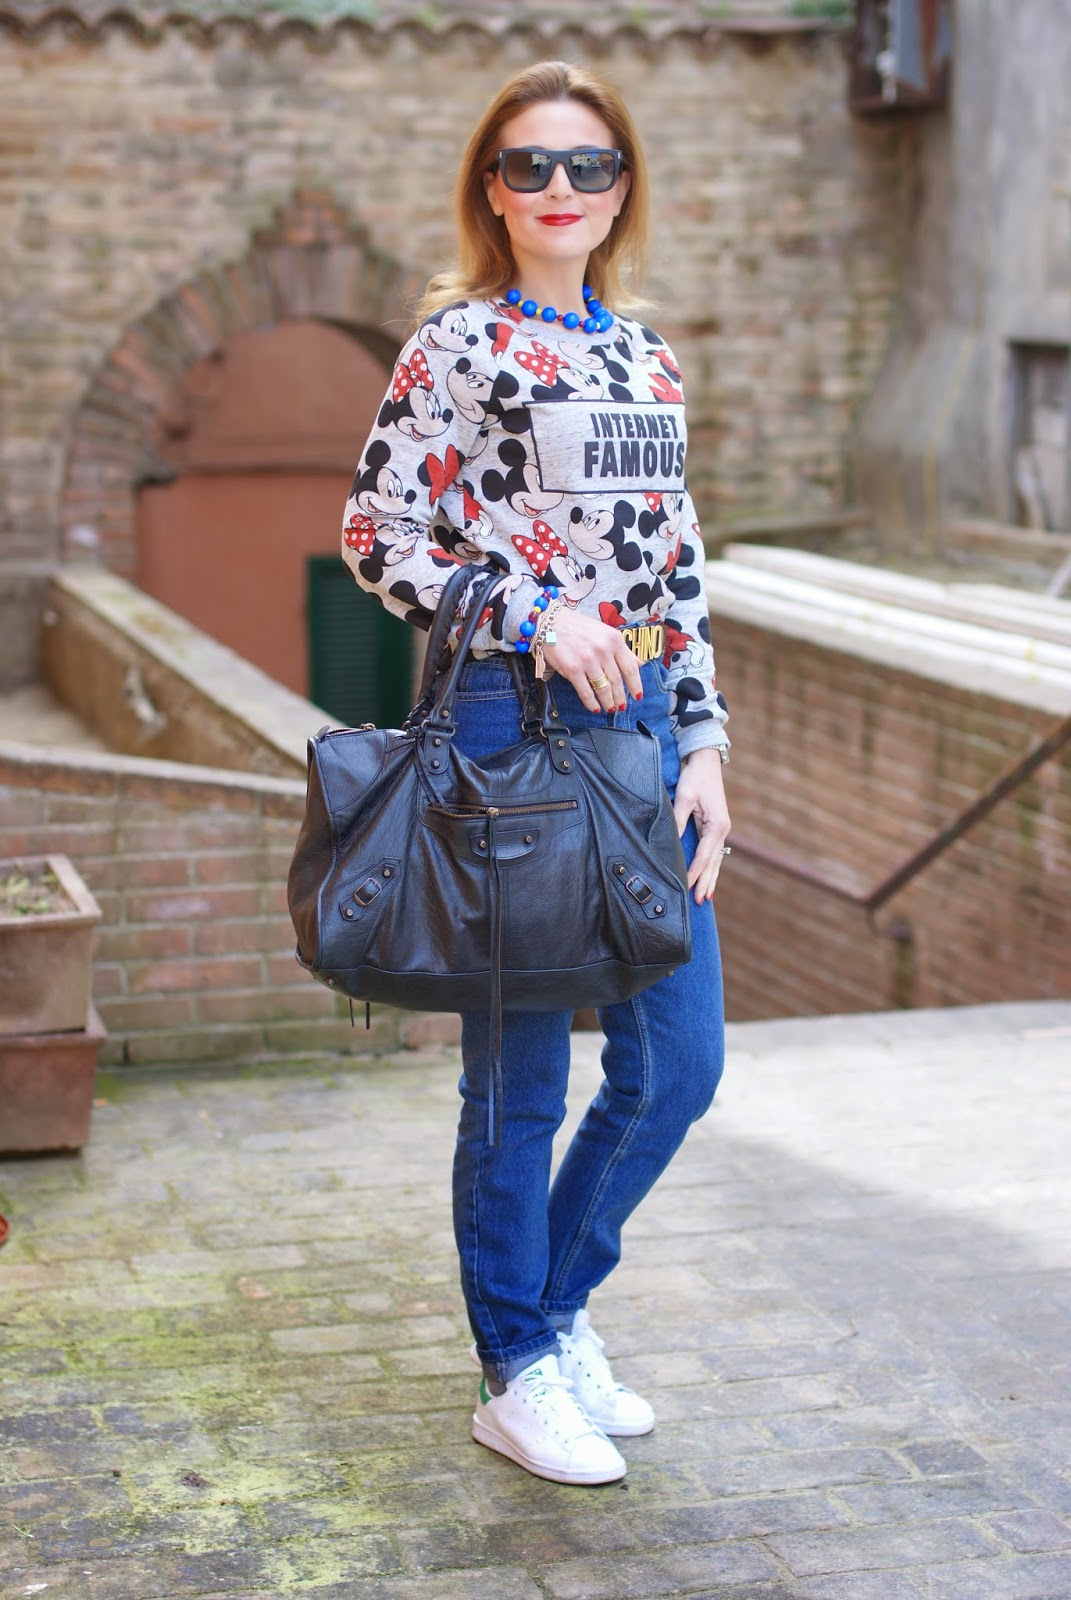 80s inspired look, zaful jeans, stan smith with 80s look, internet famous bershka top, high waisted jeans, balenciaga work bag, mickey mouse top, Fashion and Cookies, fashion blogger